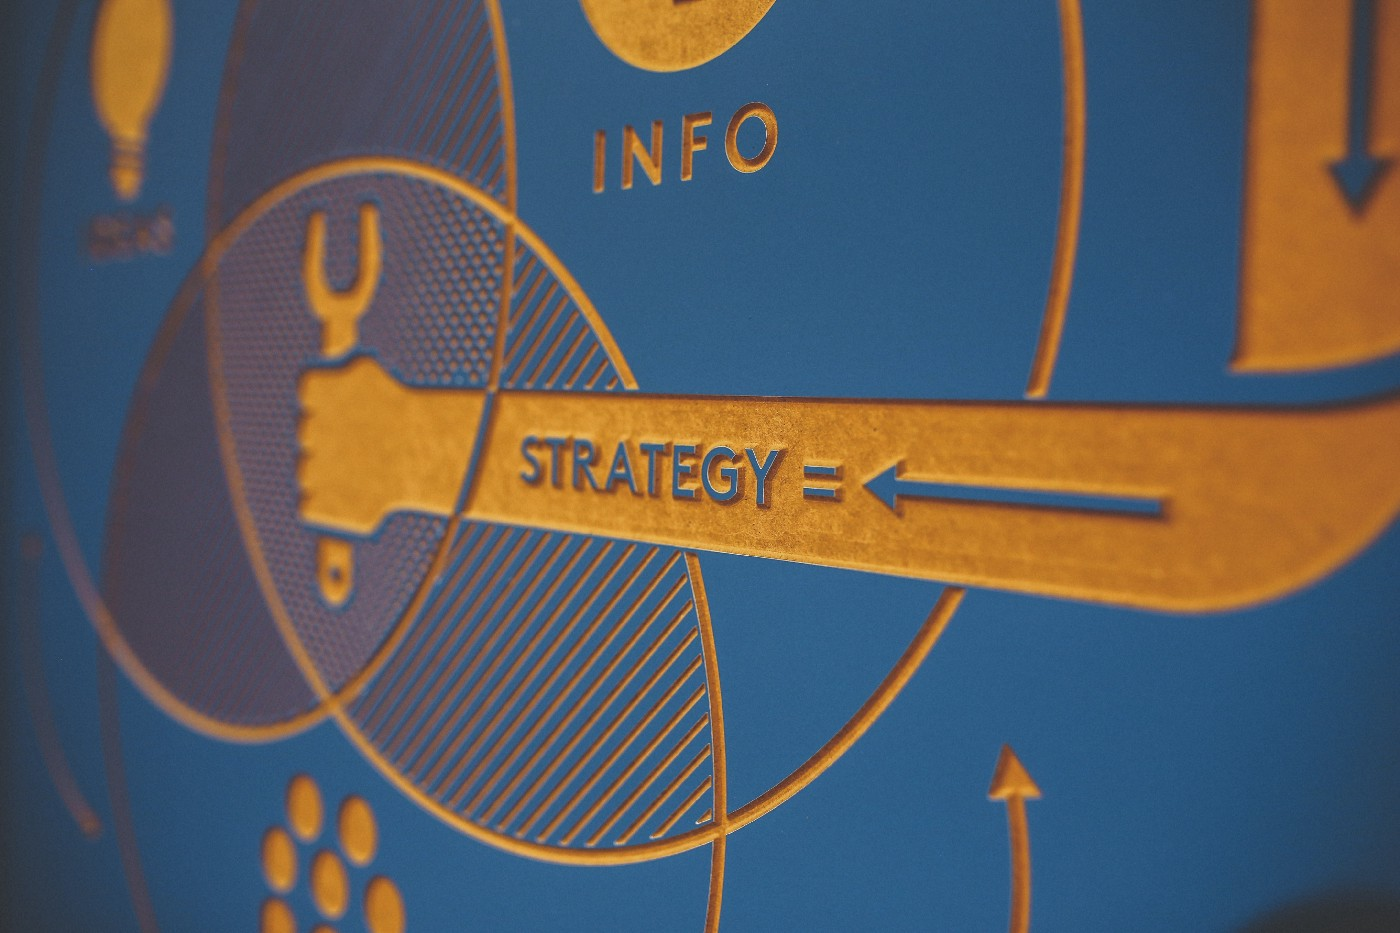 A Venn diagram including the words strategy and info.